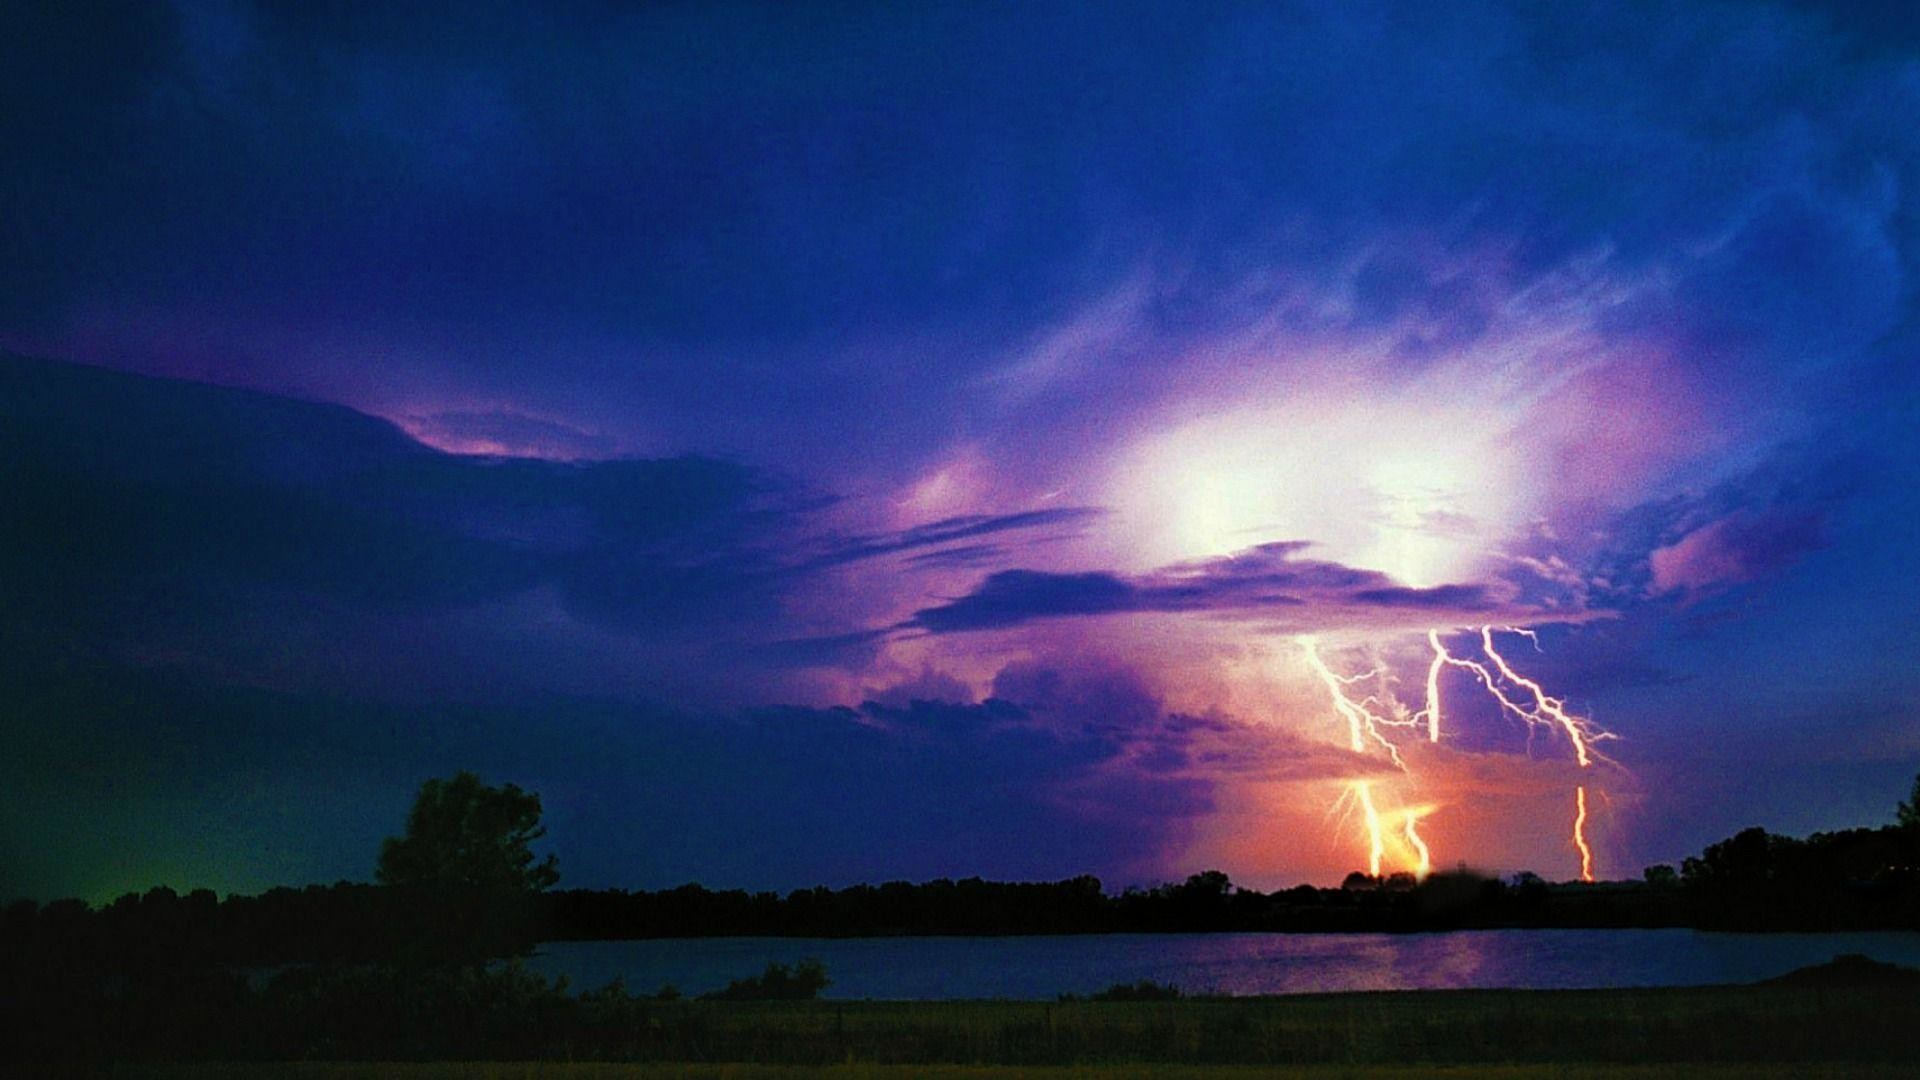 Res: 1920x1080, thunderstorm wallpapers - DriverLayer Search Engine